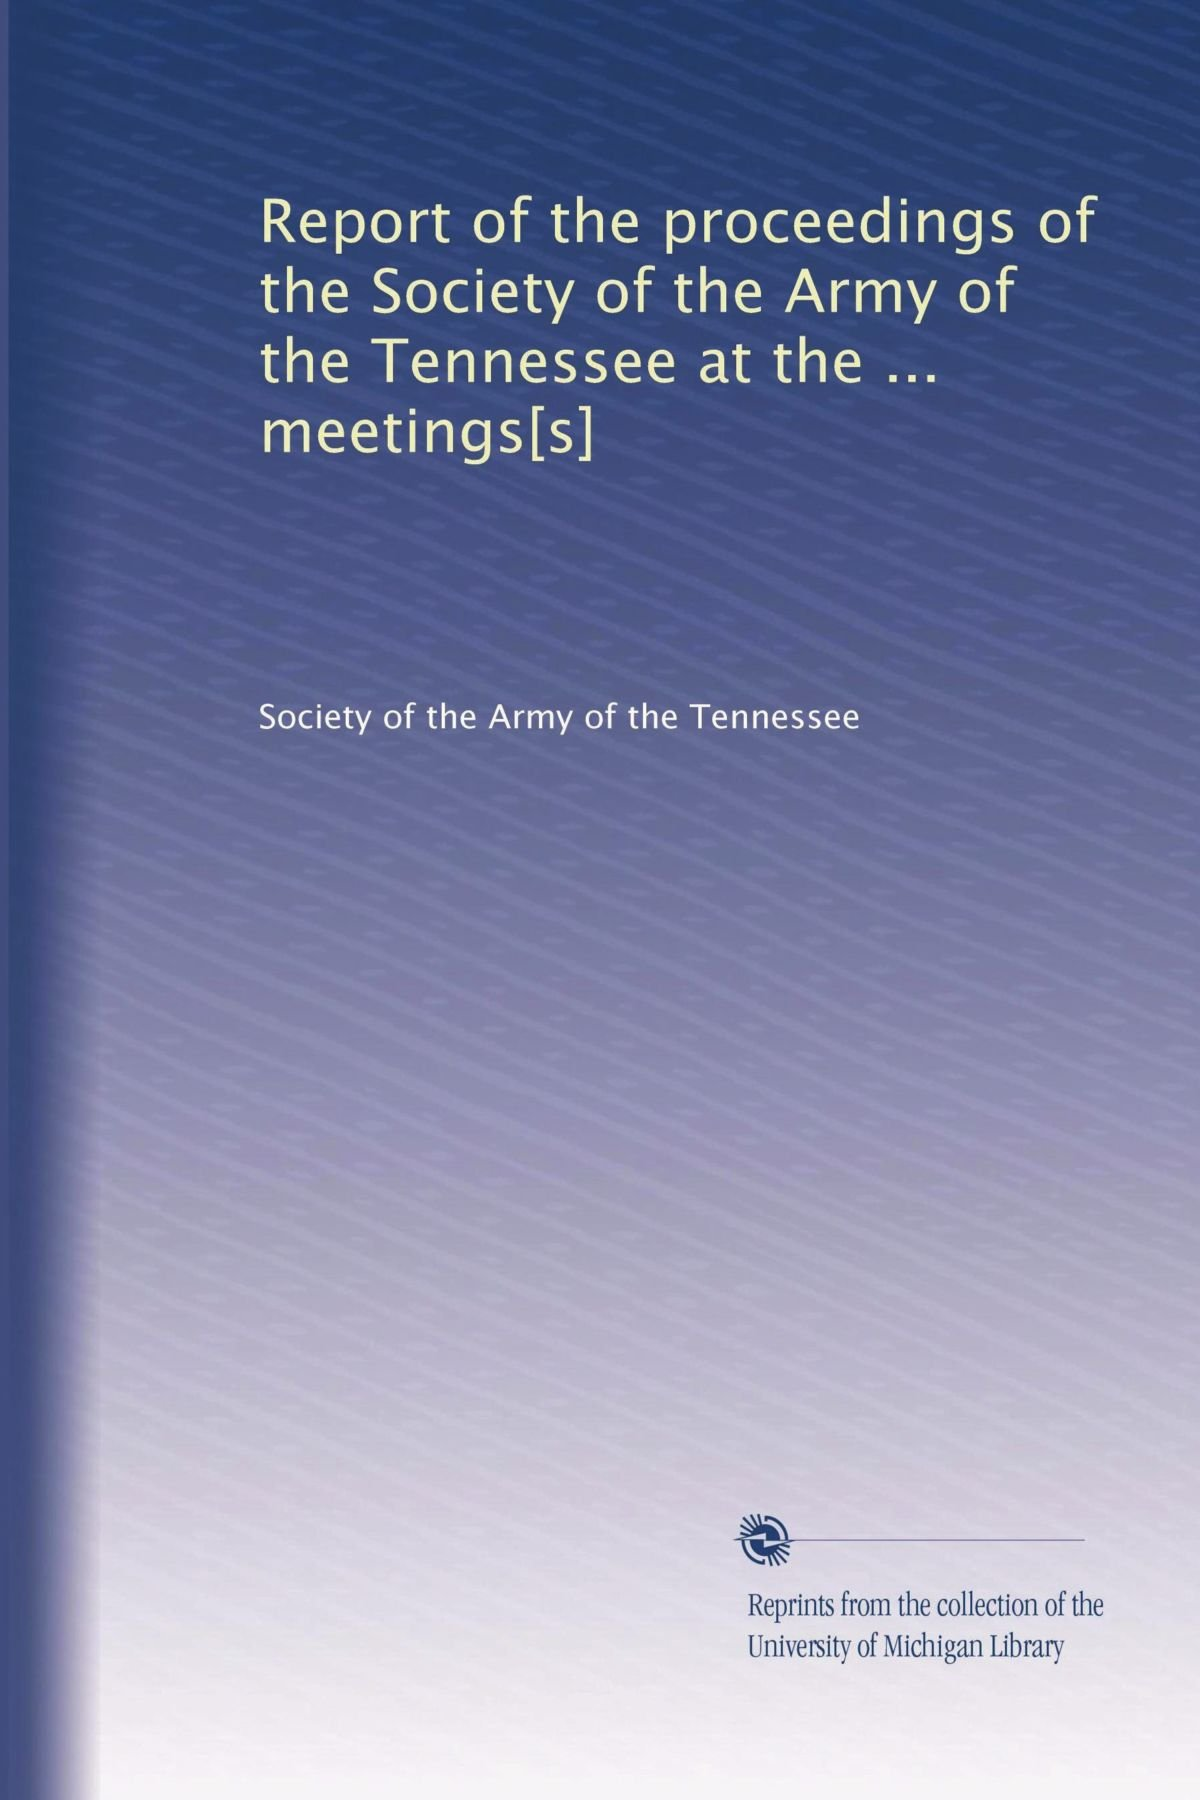 Download Report of the proceedings of the Society of the Army of the Tennessee at the ... meetings[s] PDF